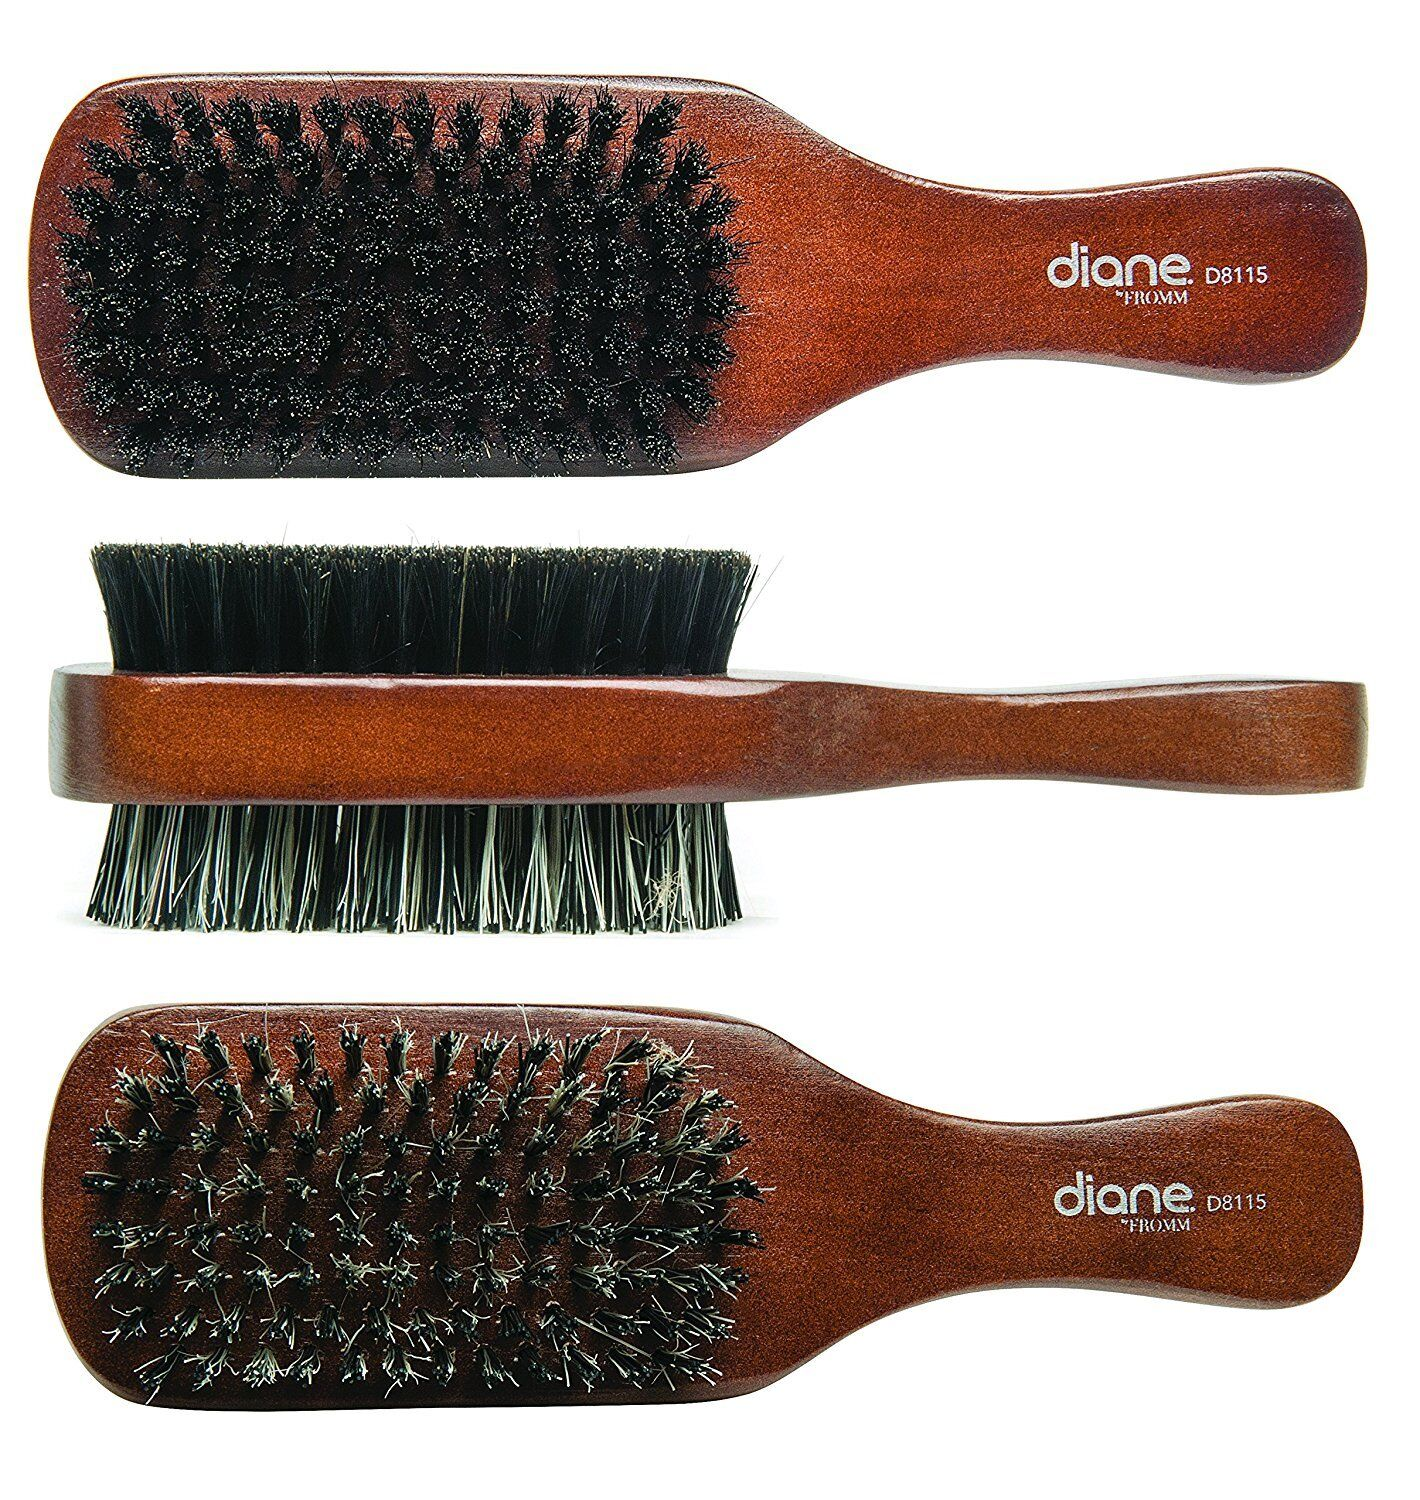 Diane 100% Boar 2-Sided Club Brush, Medium and Firm Bristles